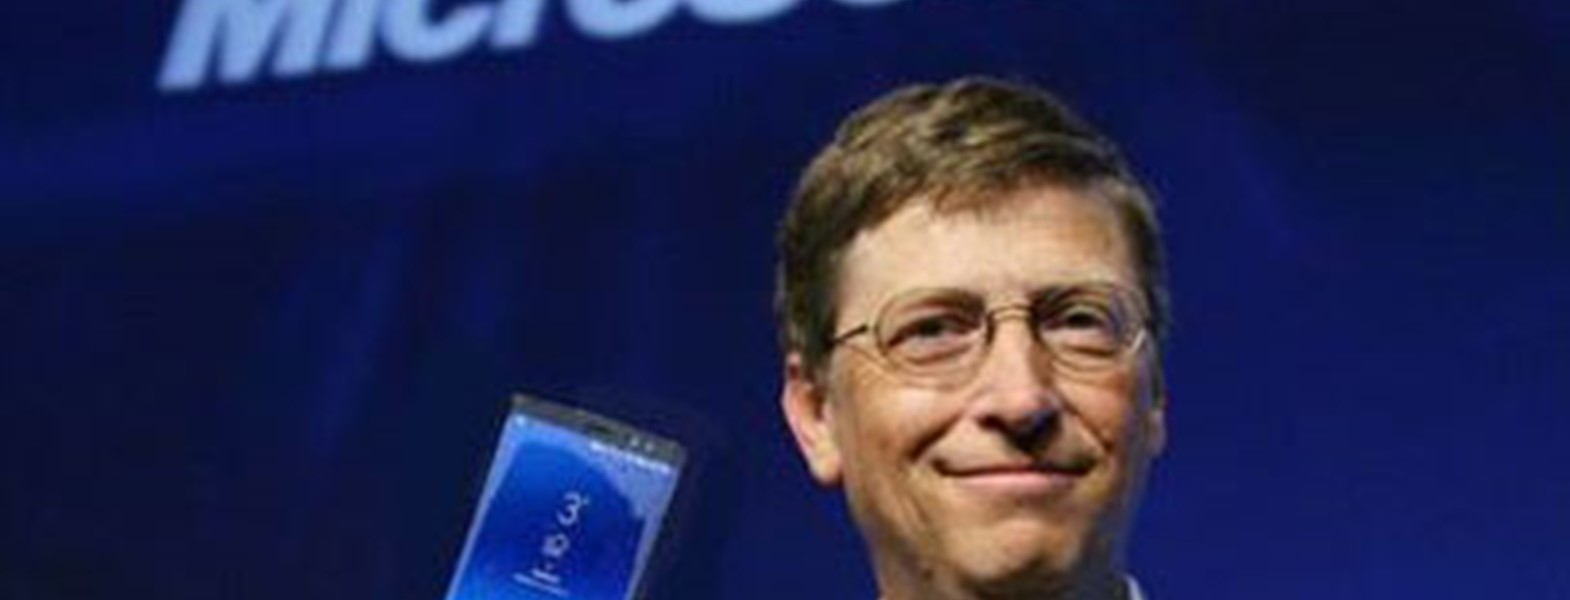 Why Bill Gates is wrong about energy